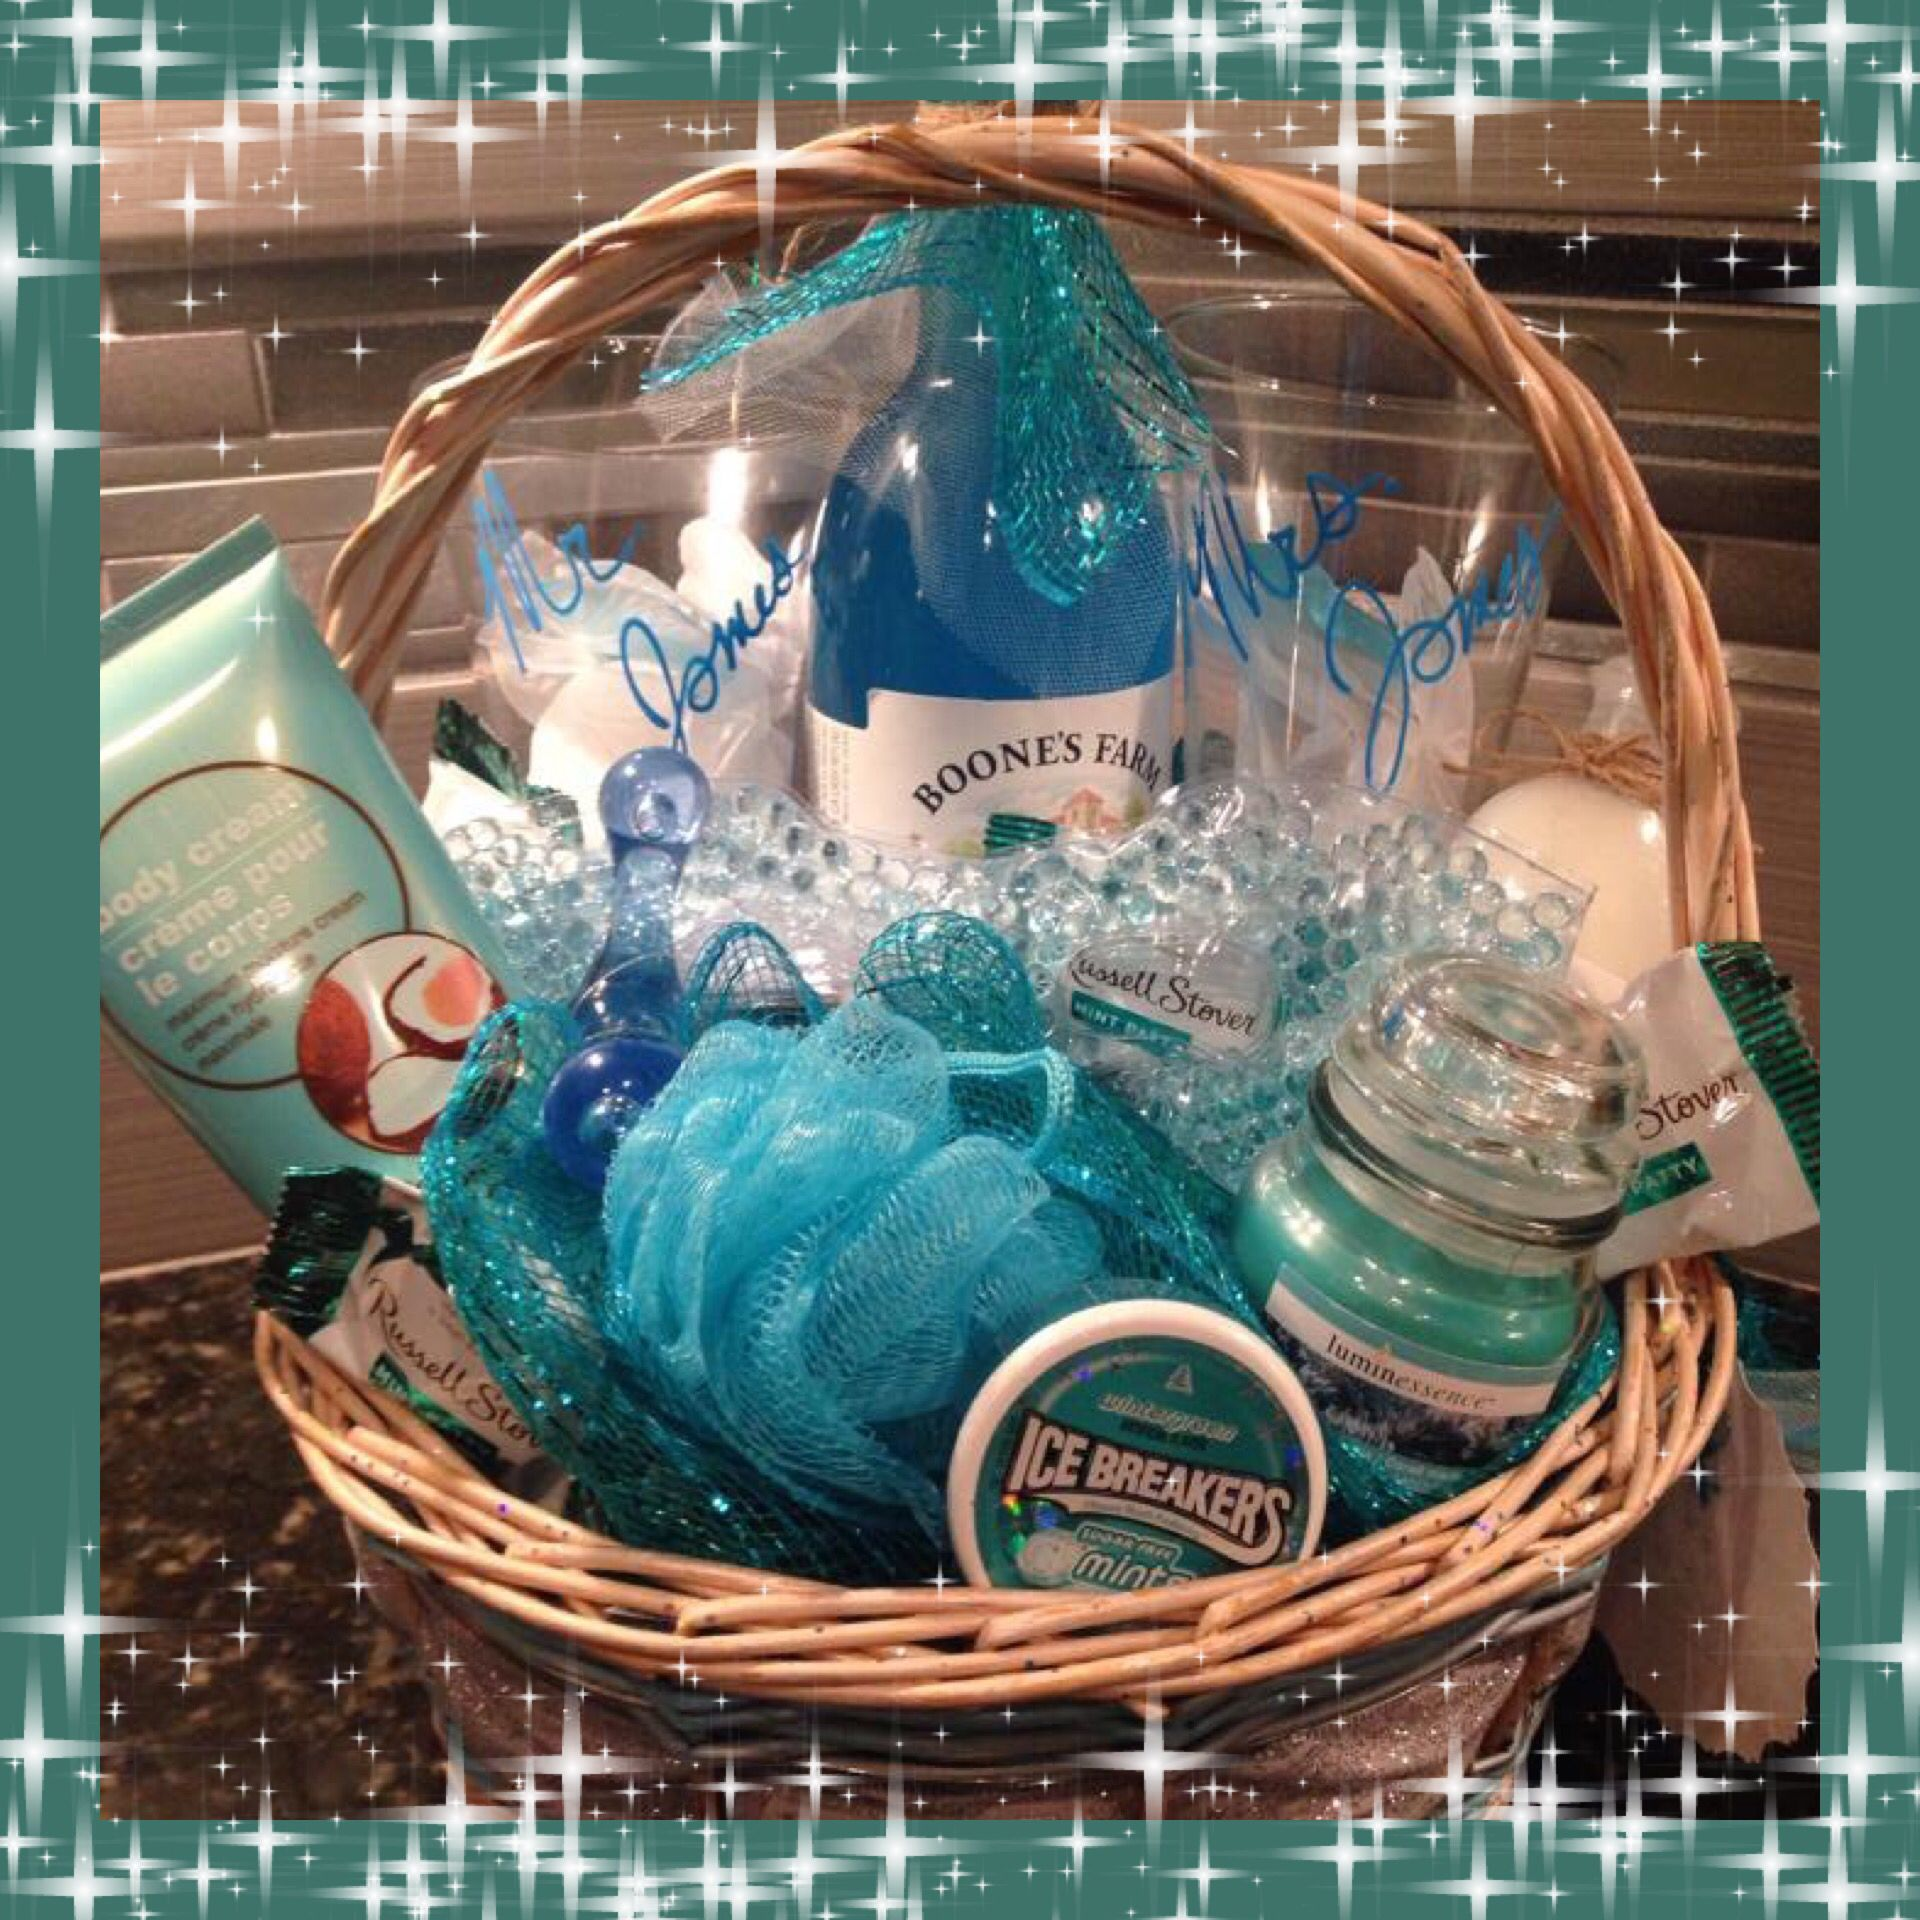 Wedding Or Honeymoon Gift Basket For Him And Her Couples Newlyweds Anniversary